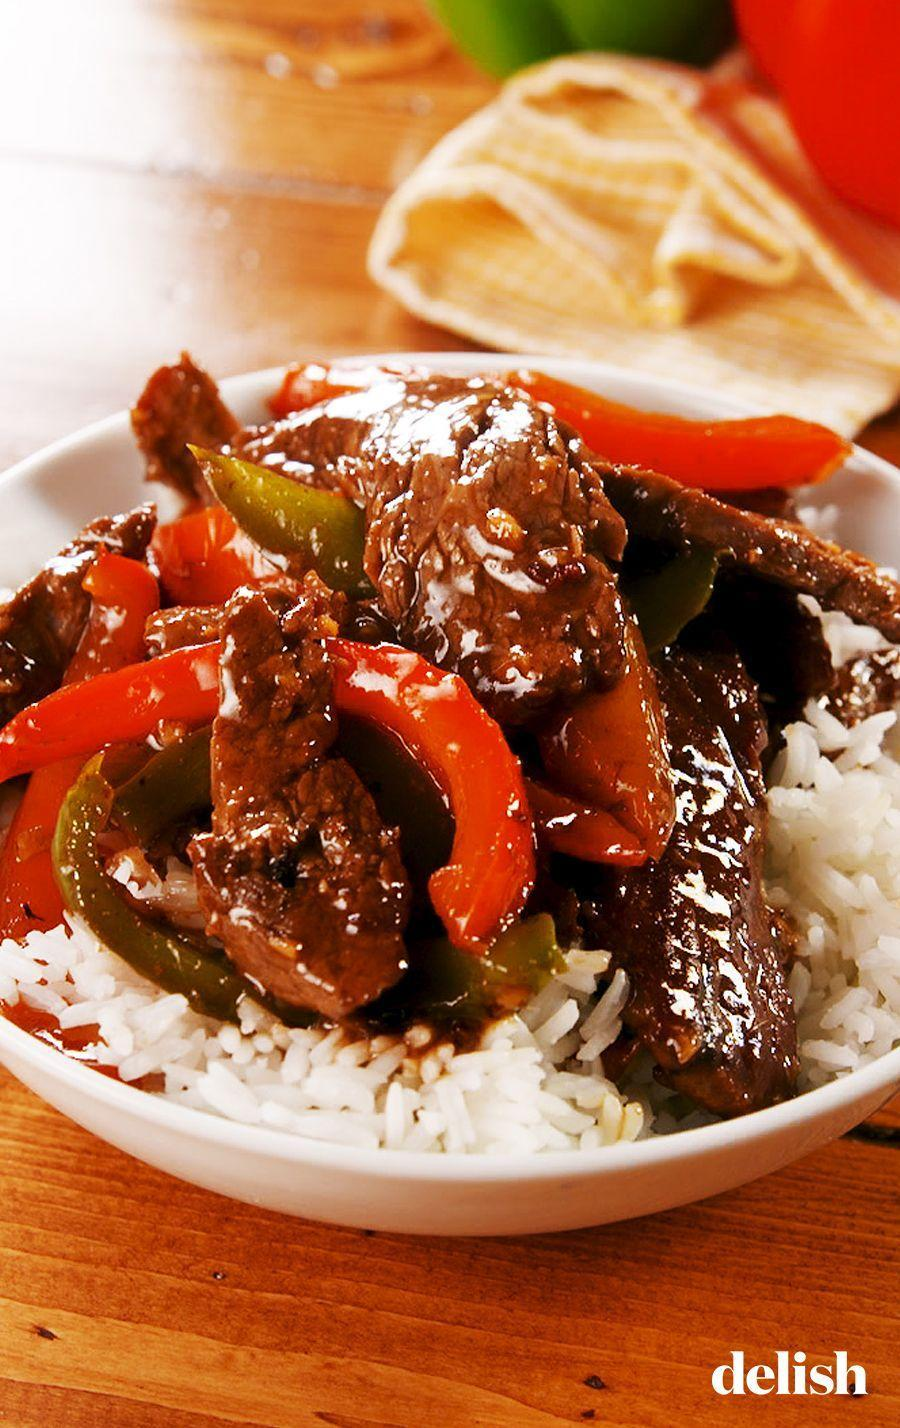 """<p>Skip the takeout on v-day.</p><p>Get the recipe from <a href=""""https://www.delish.com/cooking/recipe-ideas/a25658914/pepper-steak-recipe/"""" rel=""""nofollow noopener"""" target=""""_blank"""" data-ylk=""""slk:Delish"""" class=""""link rapid-noclick-resp"""">Delish</a>.</p>"""